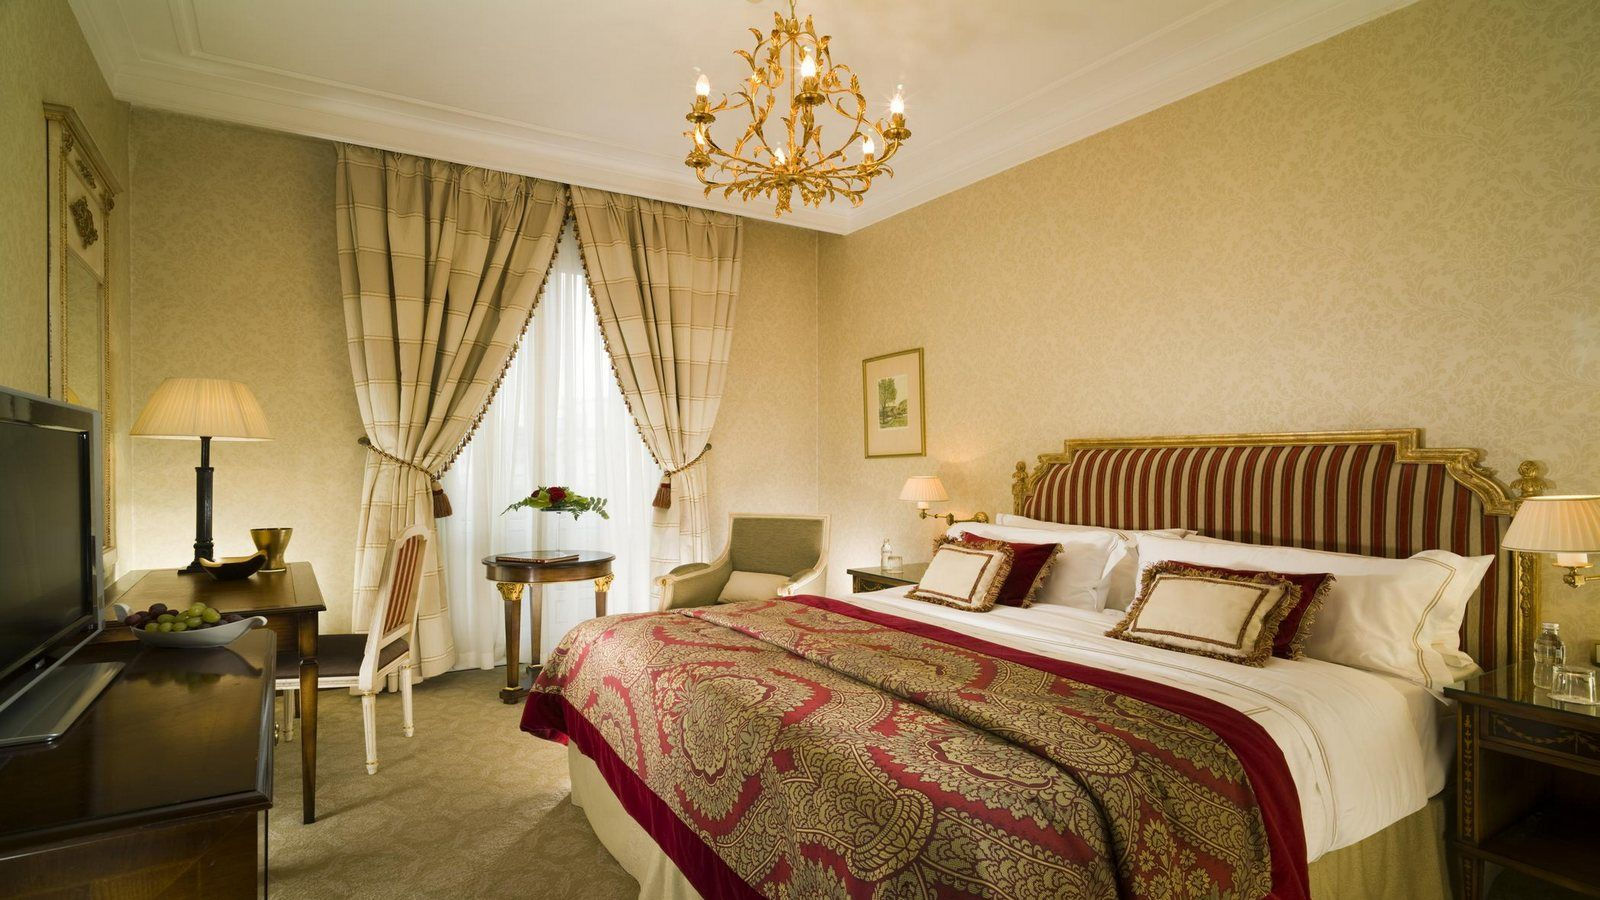 EXECUTIVE SUITE SOFIA HOTEL BALKAN